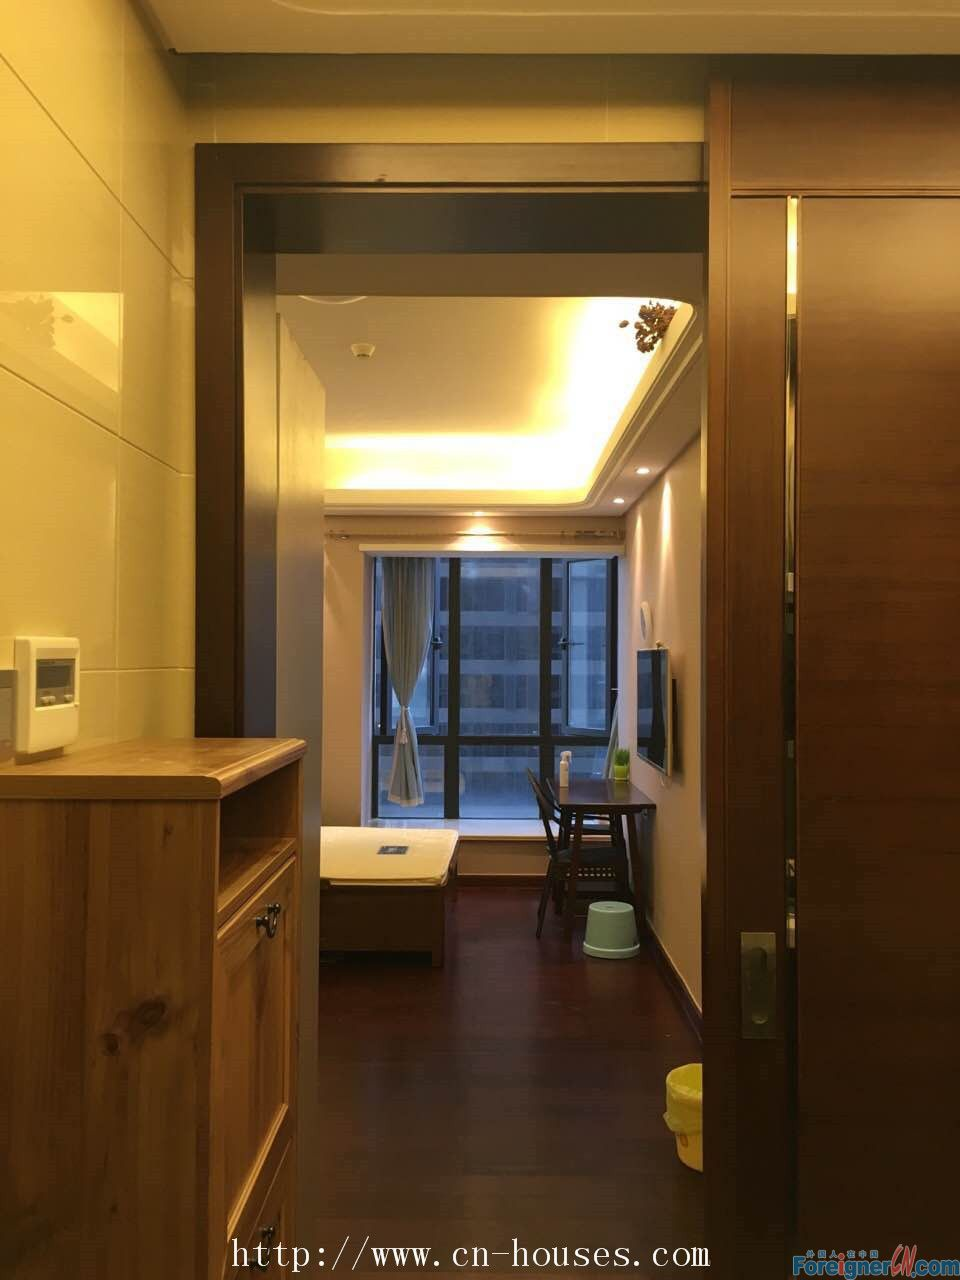 The east apartment-modern single room,New Construction, walking 5mins to MTR.nearby gym,swimming pool.